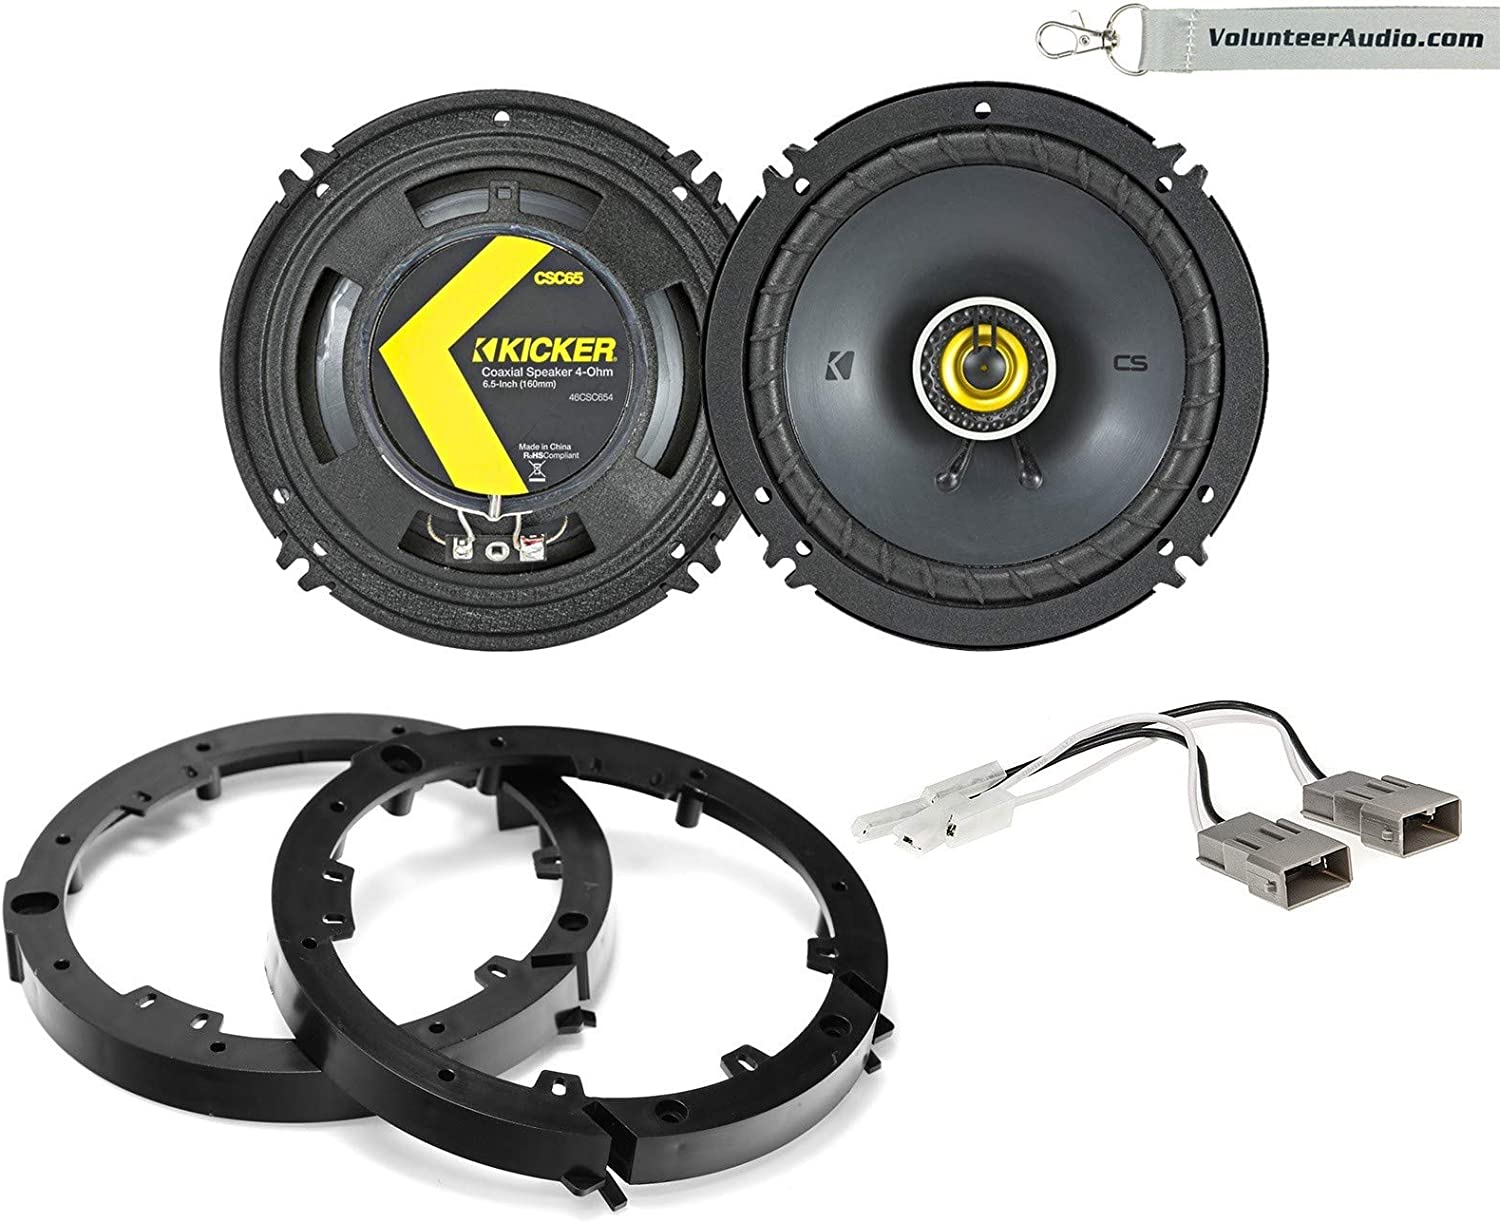 Kicker 46CSC654 Package 6-1/2 Inch (6.5) Full-Range Coaxial Speaker 2-Way 100W Fits (Front Speaker Only) 2009-2014 Acura TL, 2006-2011 Honda Civic